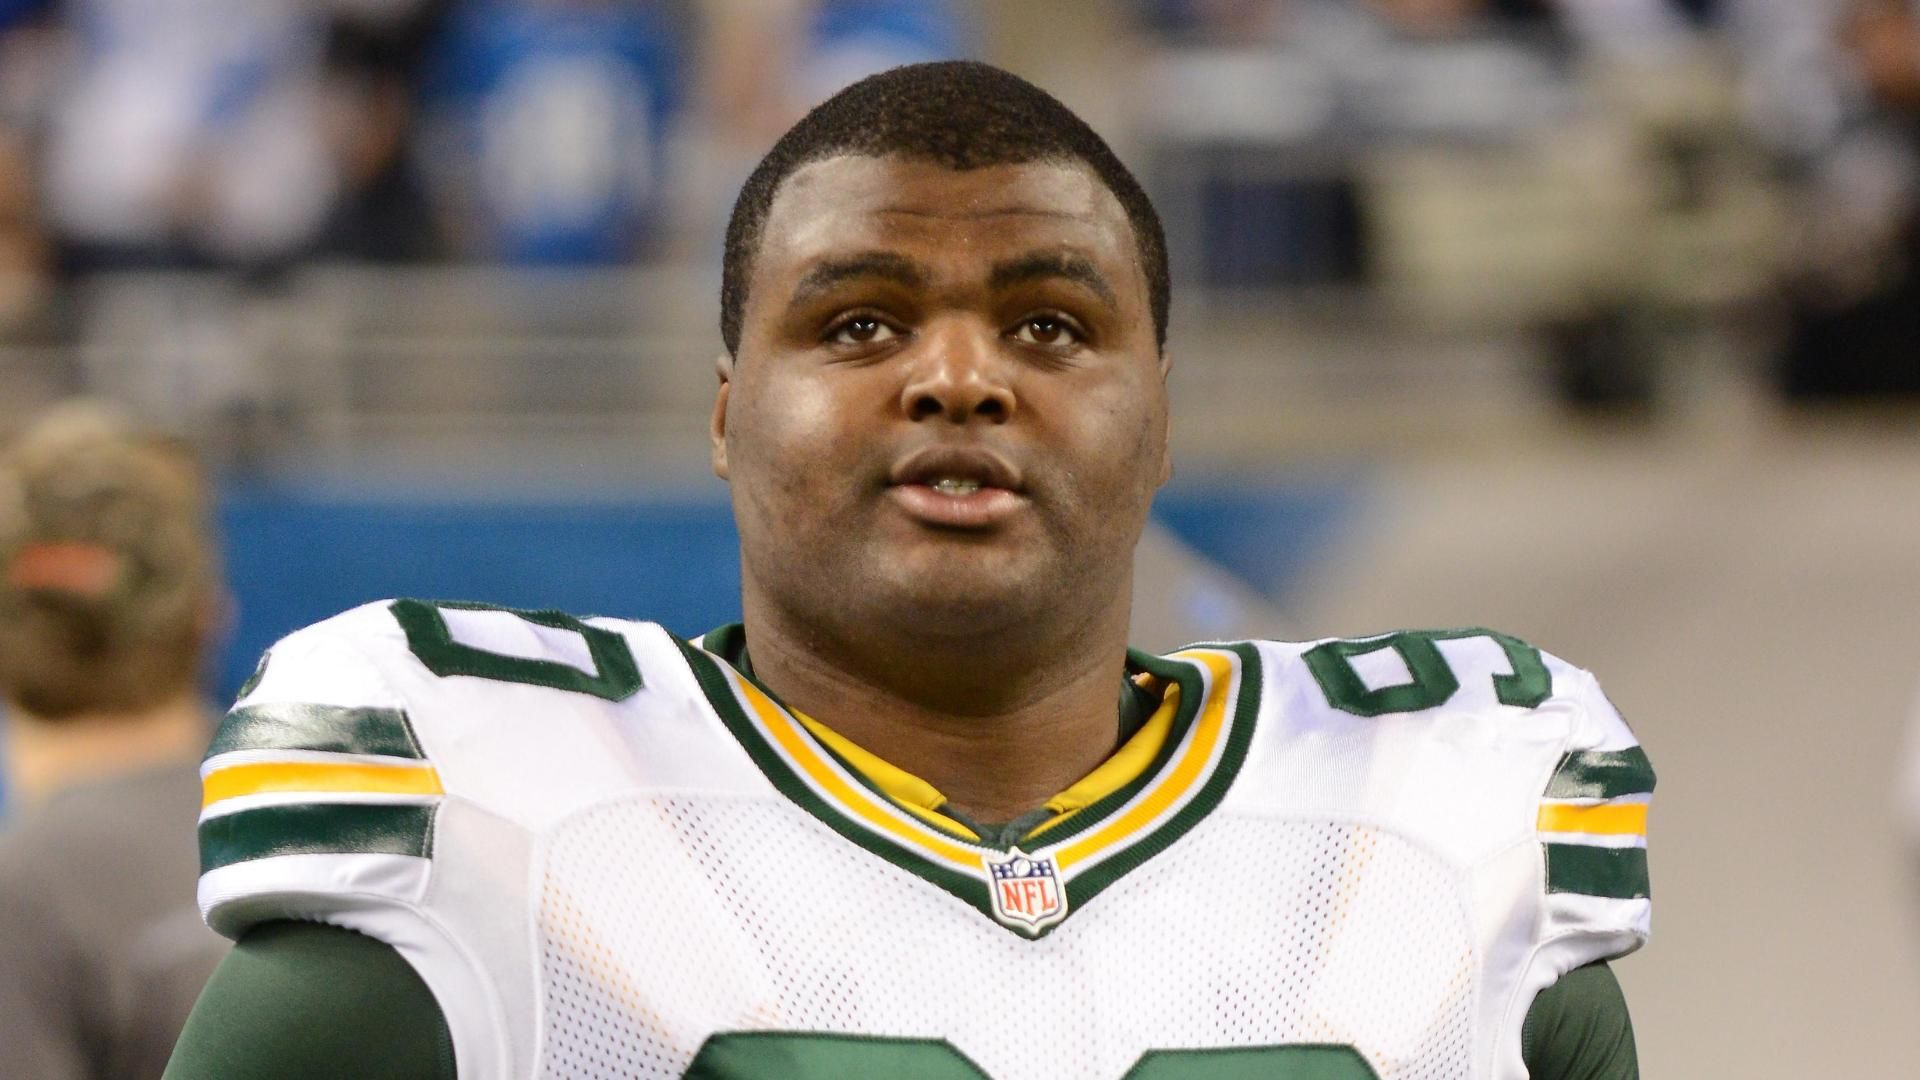 https://secure.espncdn.com/combiner/i?img=/media/motion/2014/0823/dm_140823_nfl_raji_out1222/dm_140823_nfl_raji_out1222.jpg